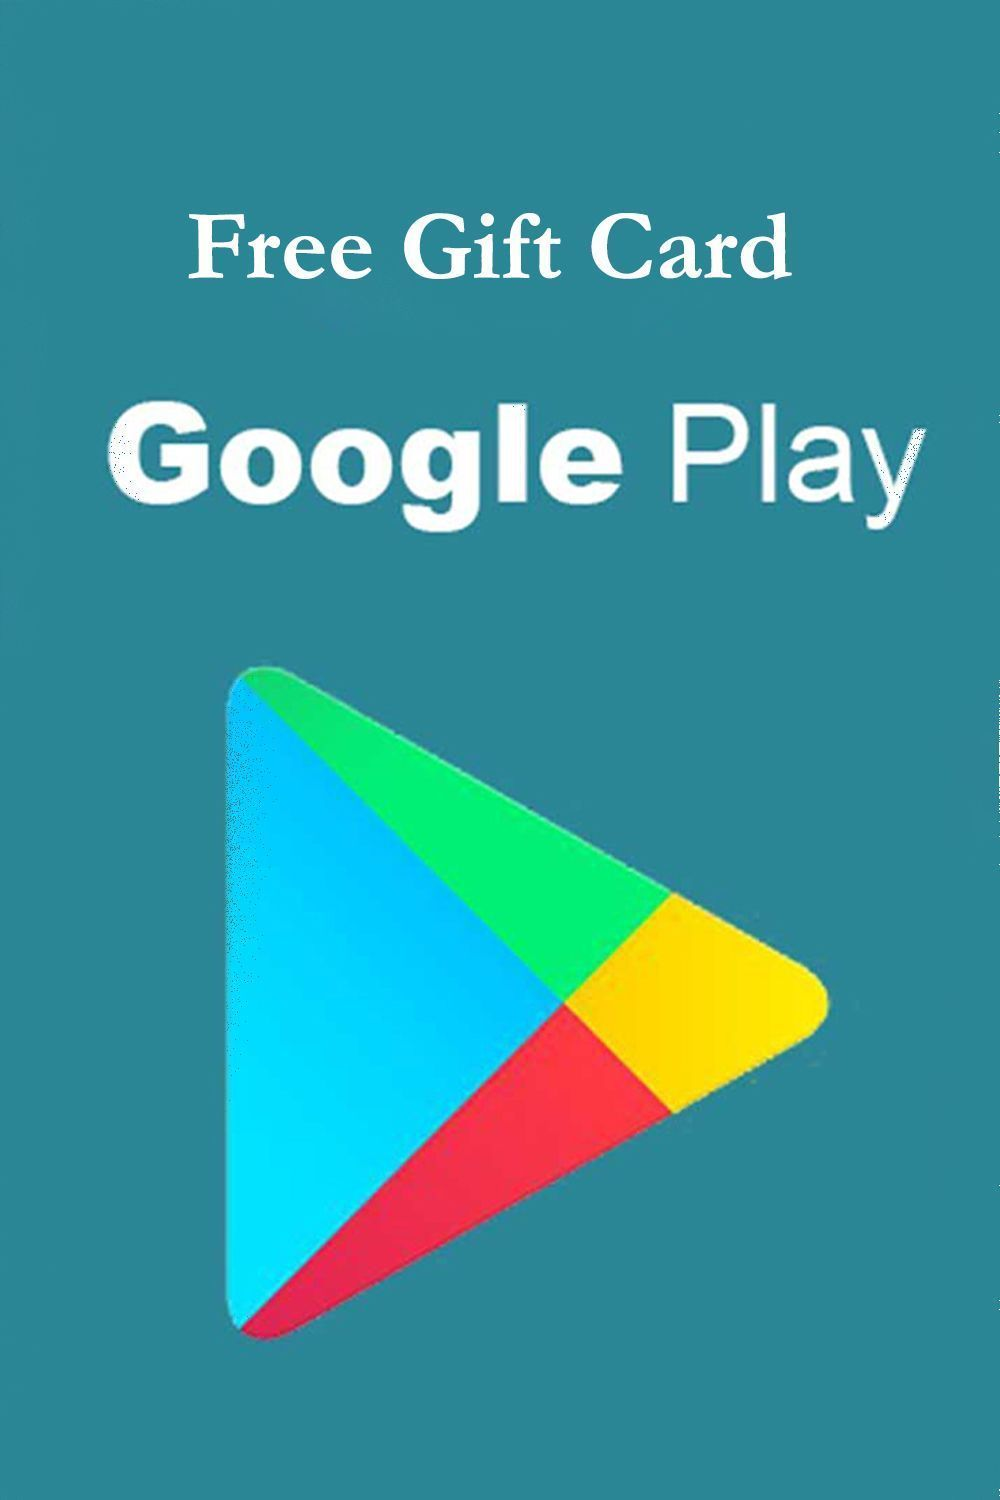 How to Get Free Google Play Gift Cards -  Are you Looking for a free google play... -  How to Get Free Google Play Gift Cards –  Are you Looking for a free google play gift card? To ge - #amazongiftcard #cards #Free #freegiftcard #Gift #giftcardluxury #google #looking #Play